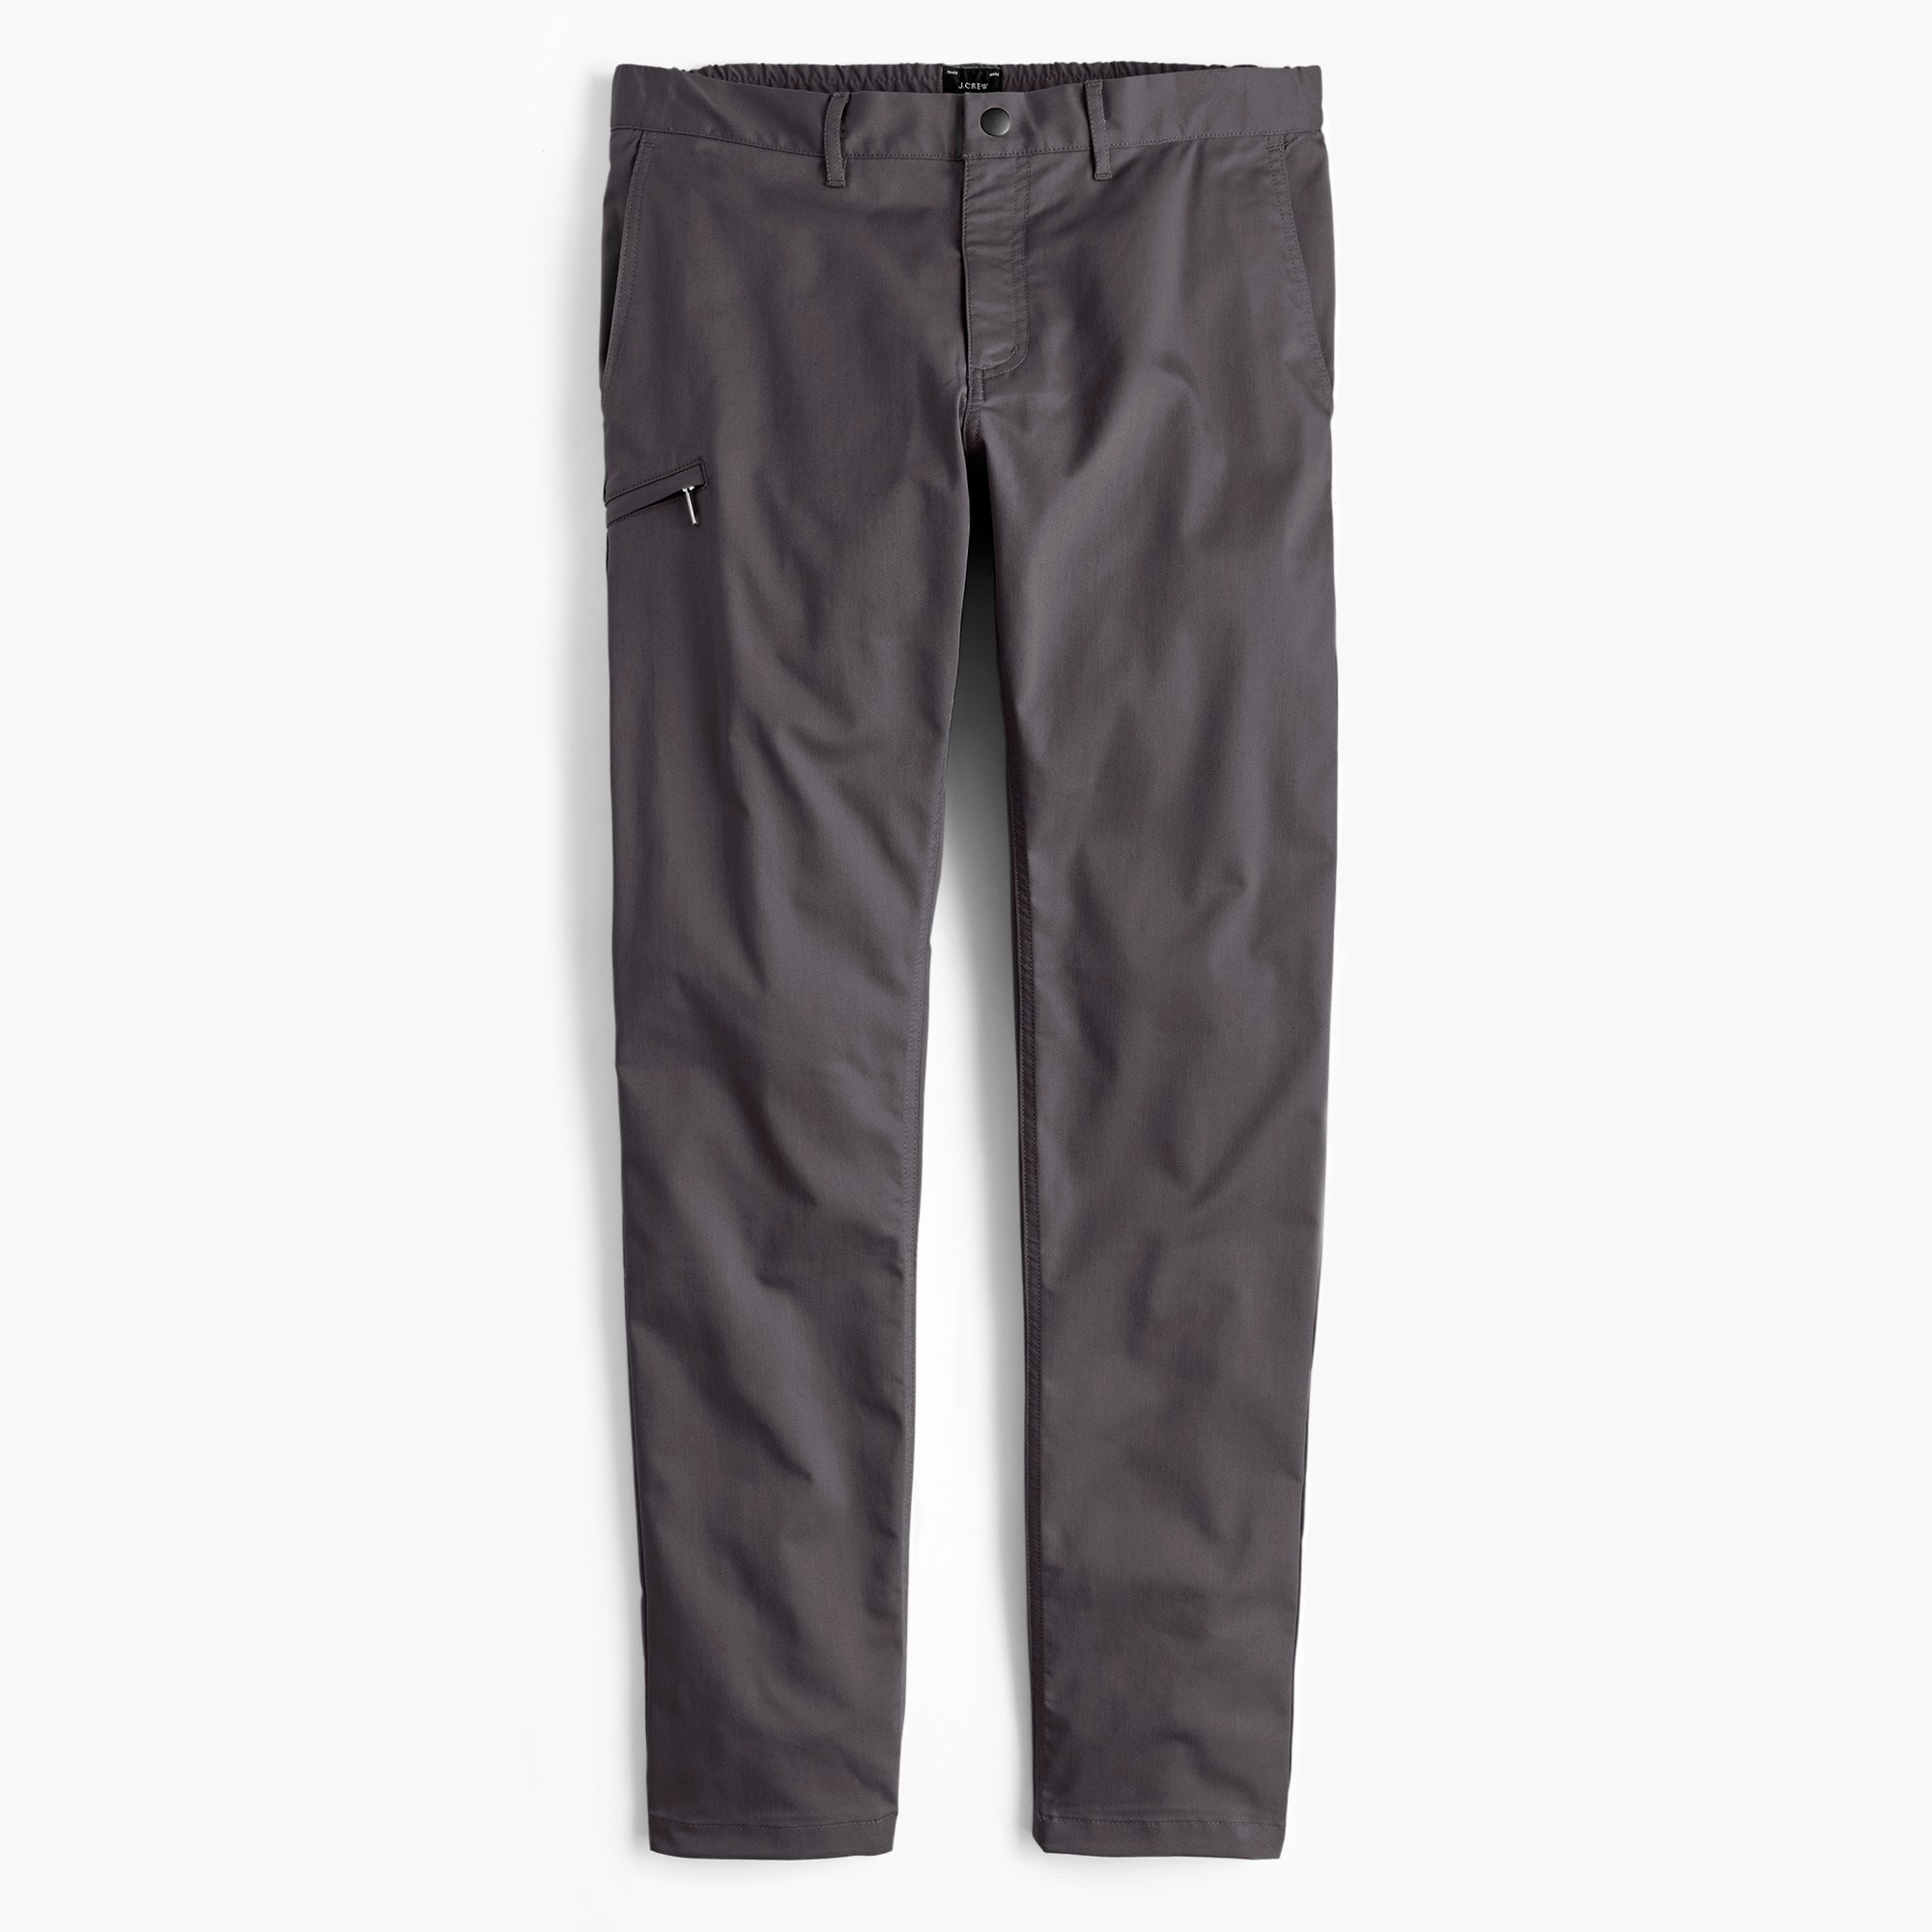 484 Slim-fit performance pant